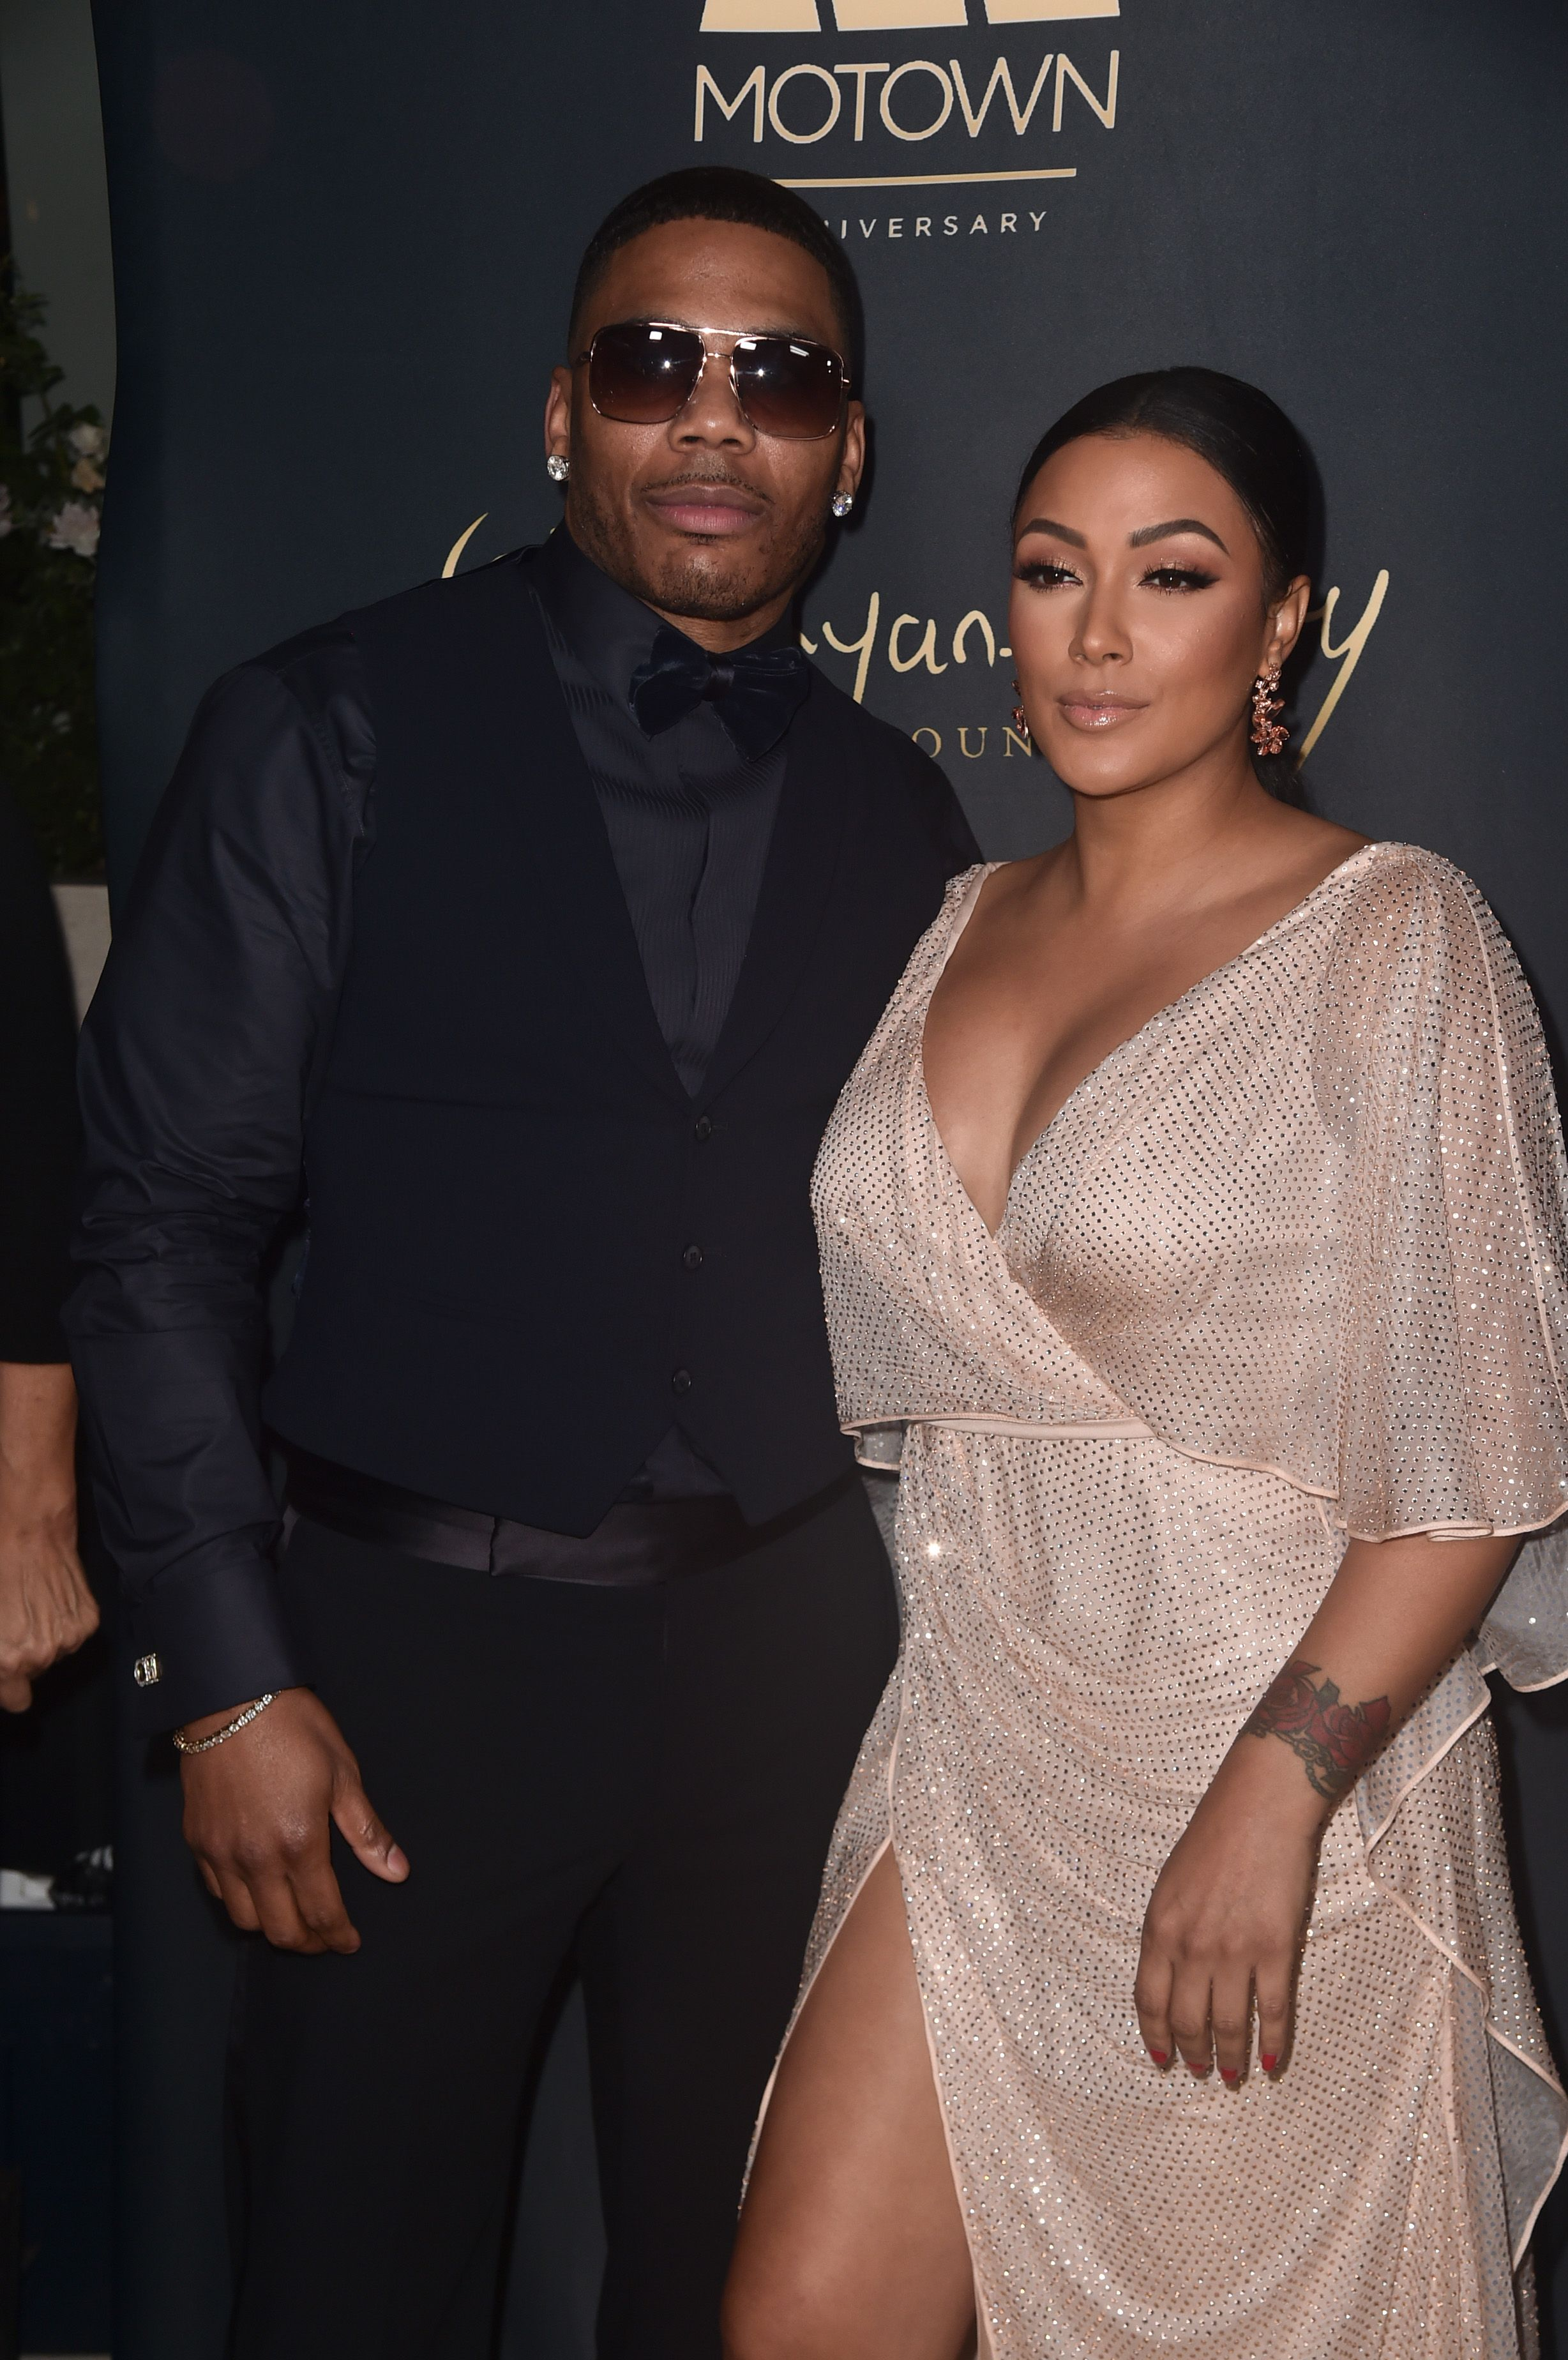 Nelly and Shantel Jackson at the Ryan Gordy Foundation's celebration of 60 Years of Motown at Waldorf Astoria Beverly Hills on November 11, 2019 | Photo: Getty Images